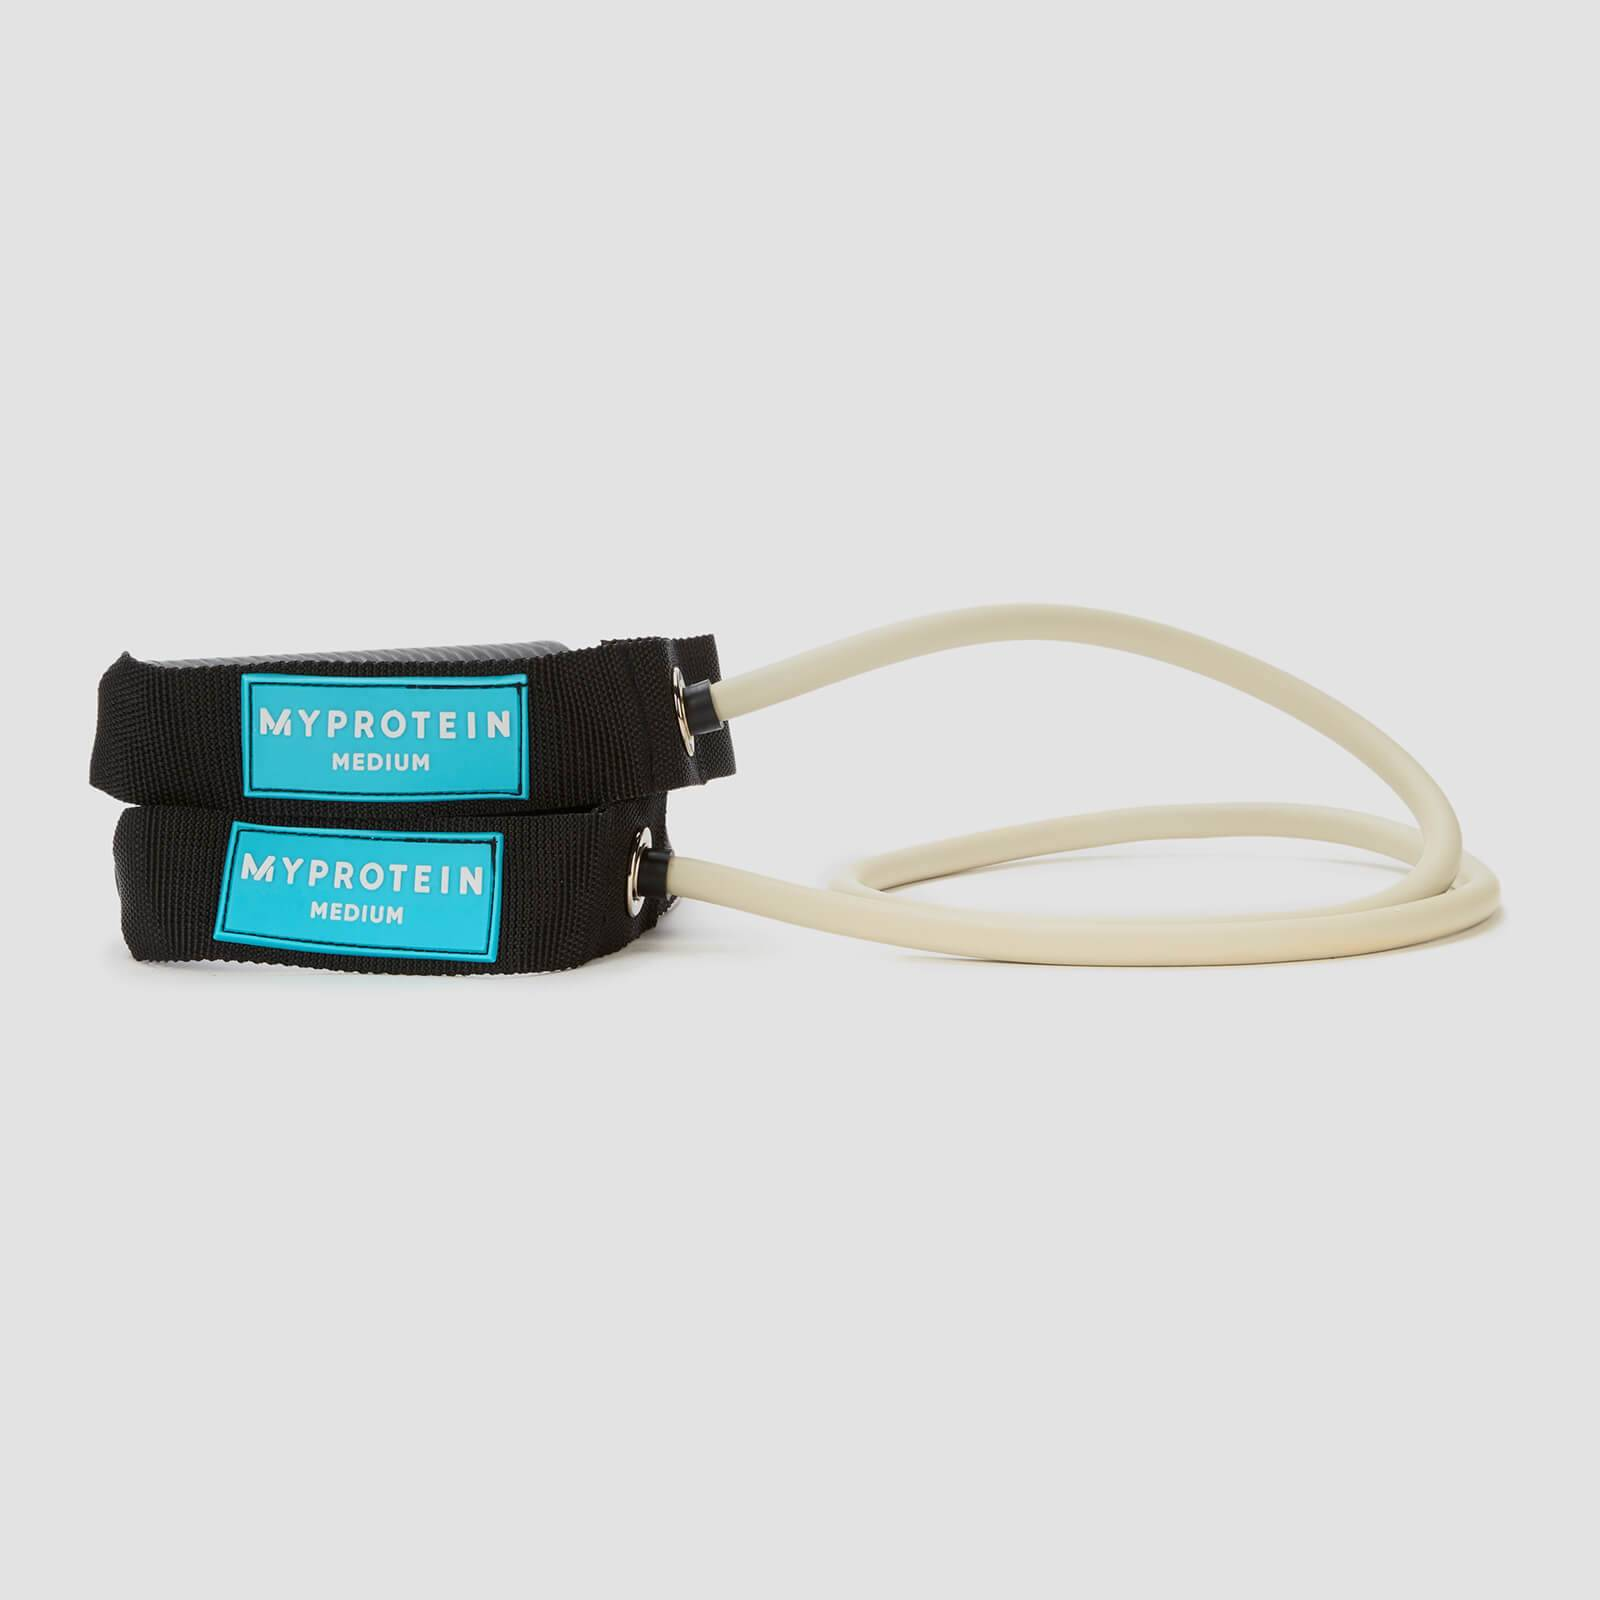 Myprotein Resistance Band - Medium - Grey